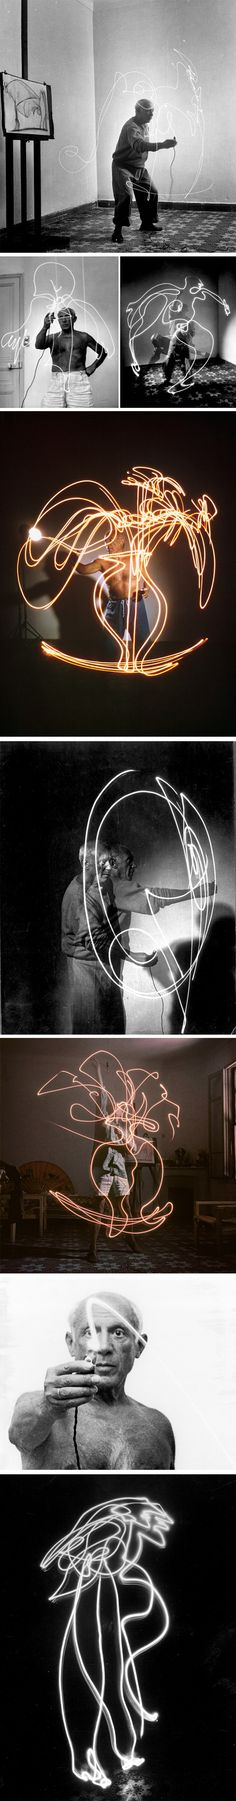 Light-Drawings-Pablo-Picasso-2